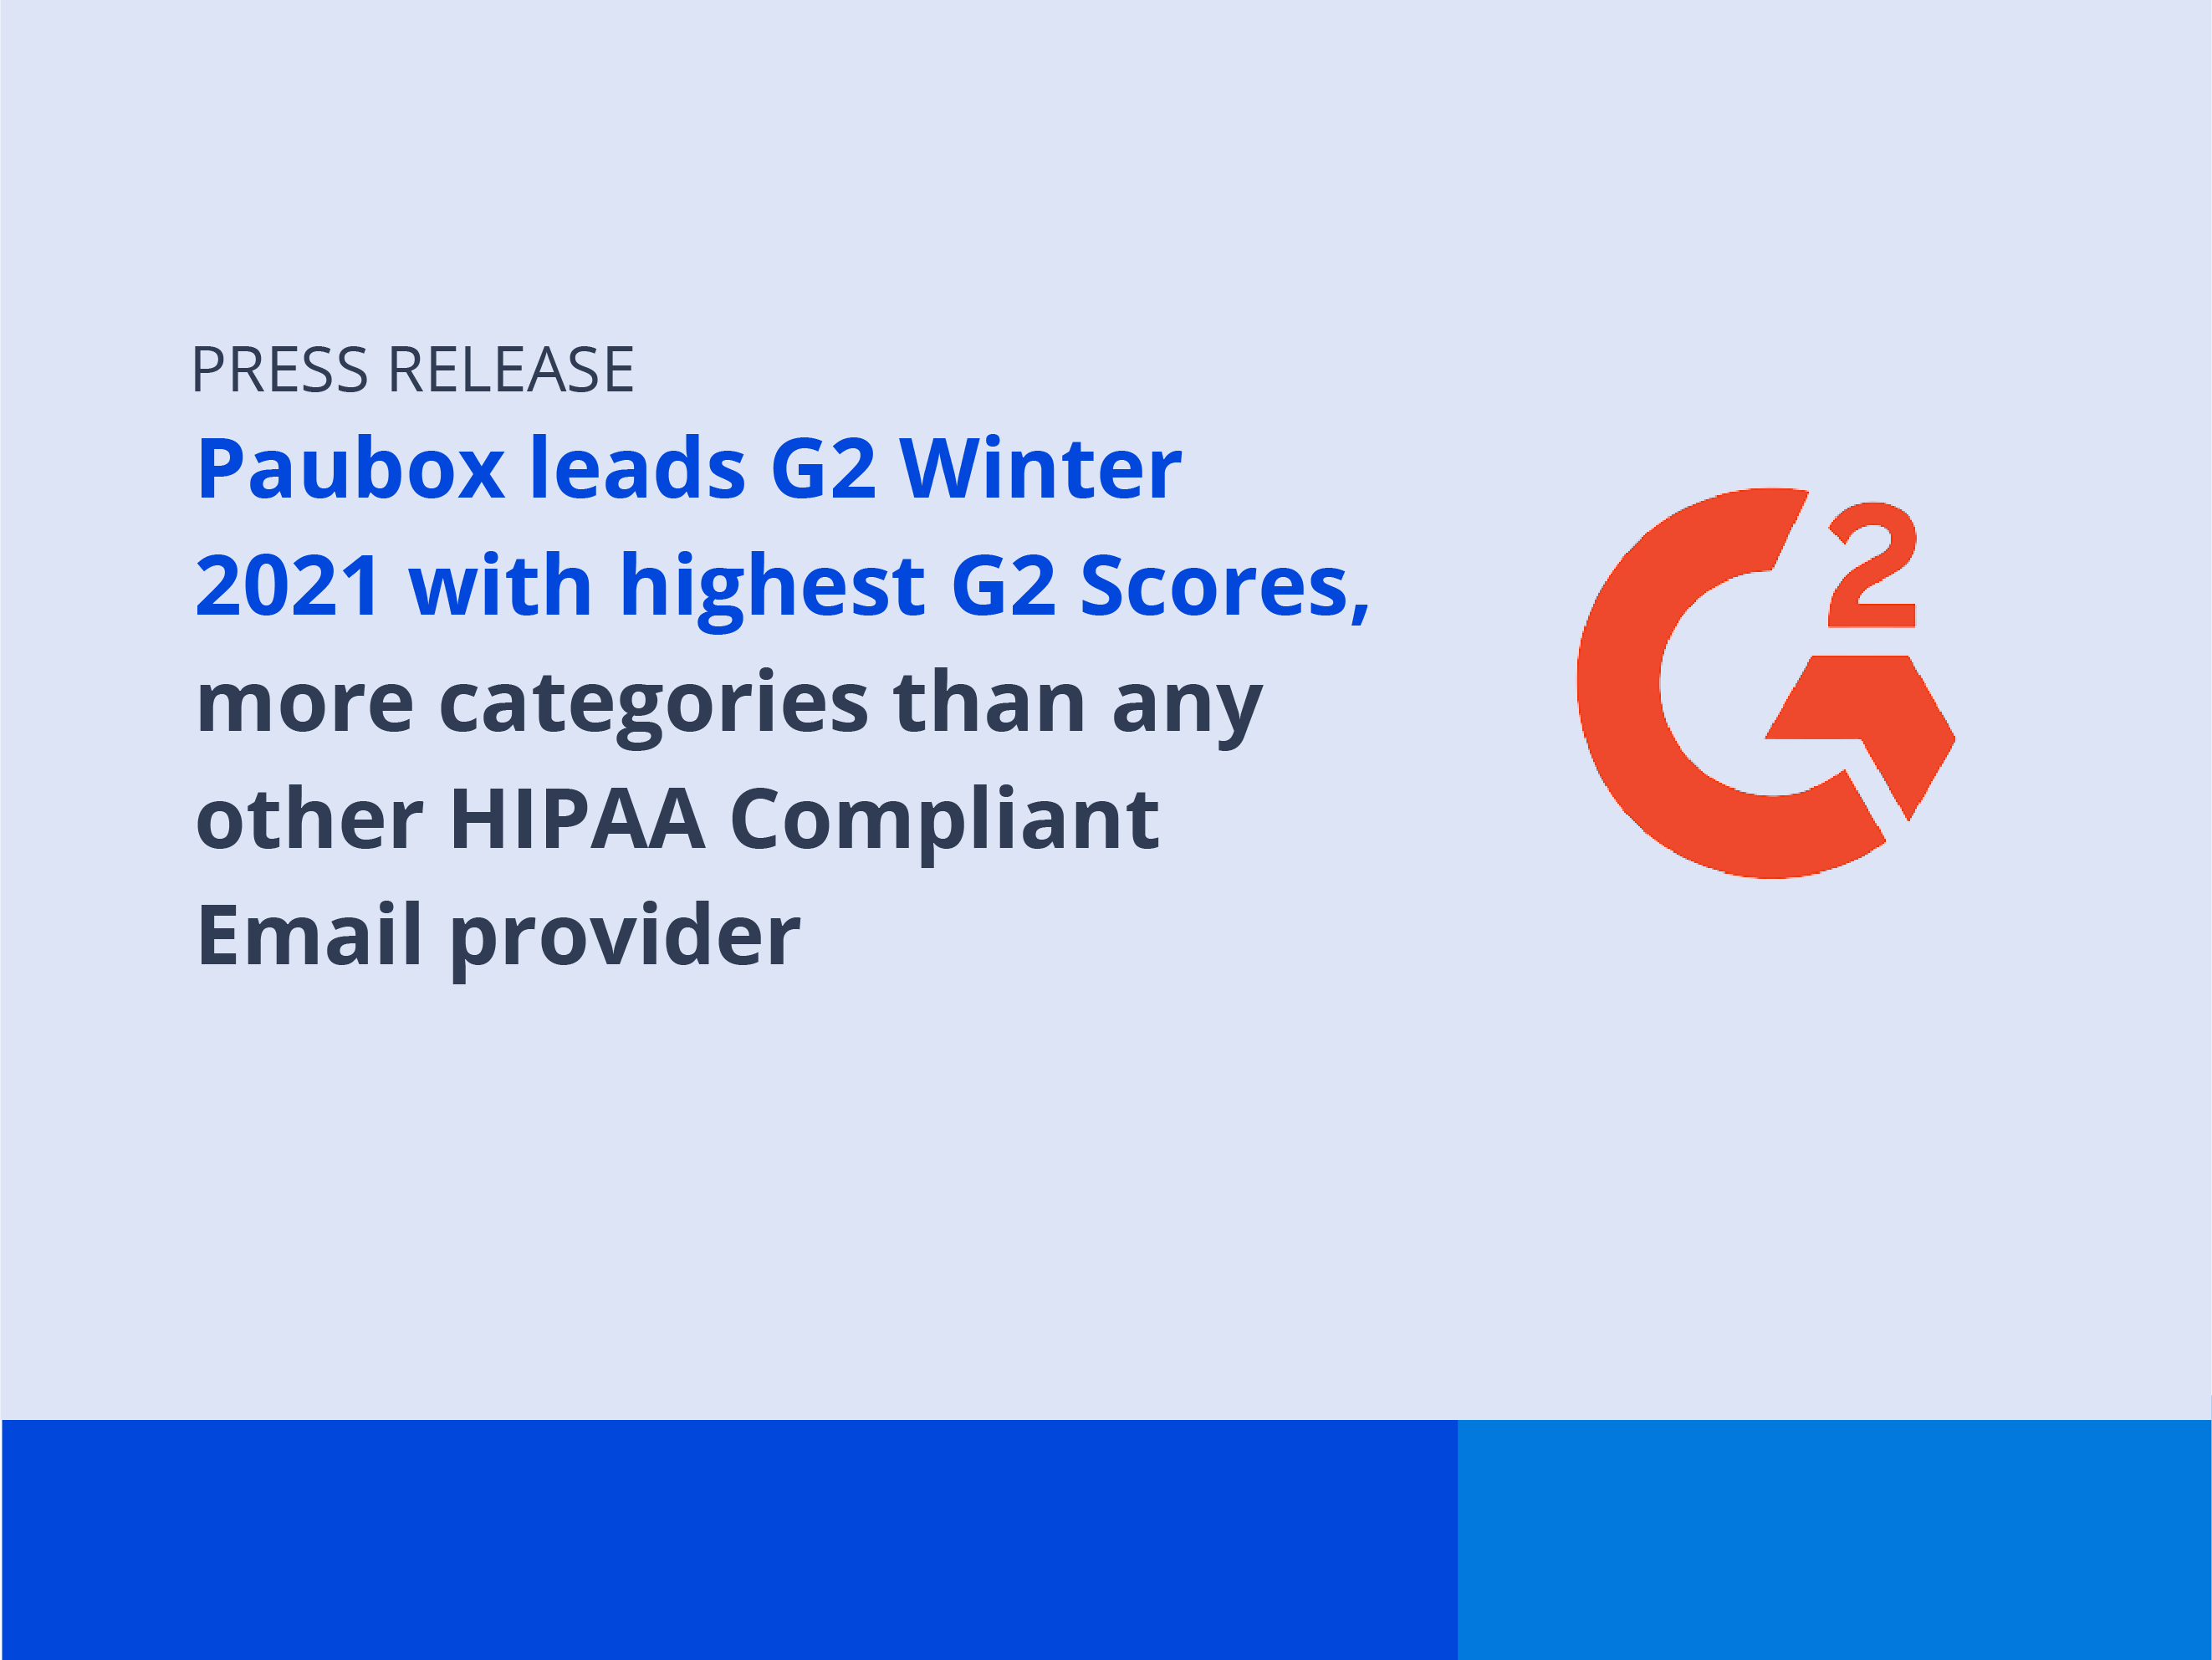 Paubox Leads G2 Winter 2021 with Highest G2 Scores, More Categories Than Any Other HIPAA Compliant Email Provider